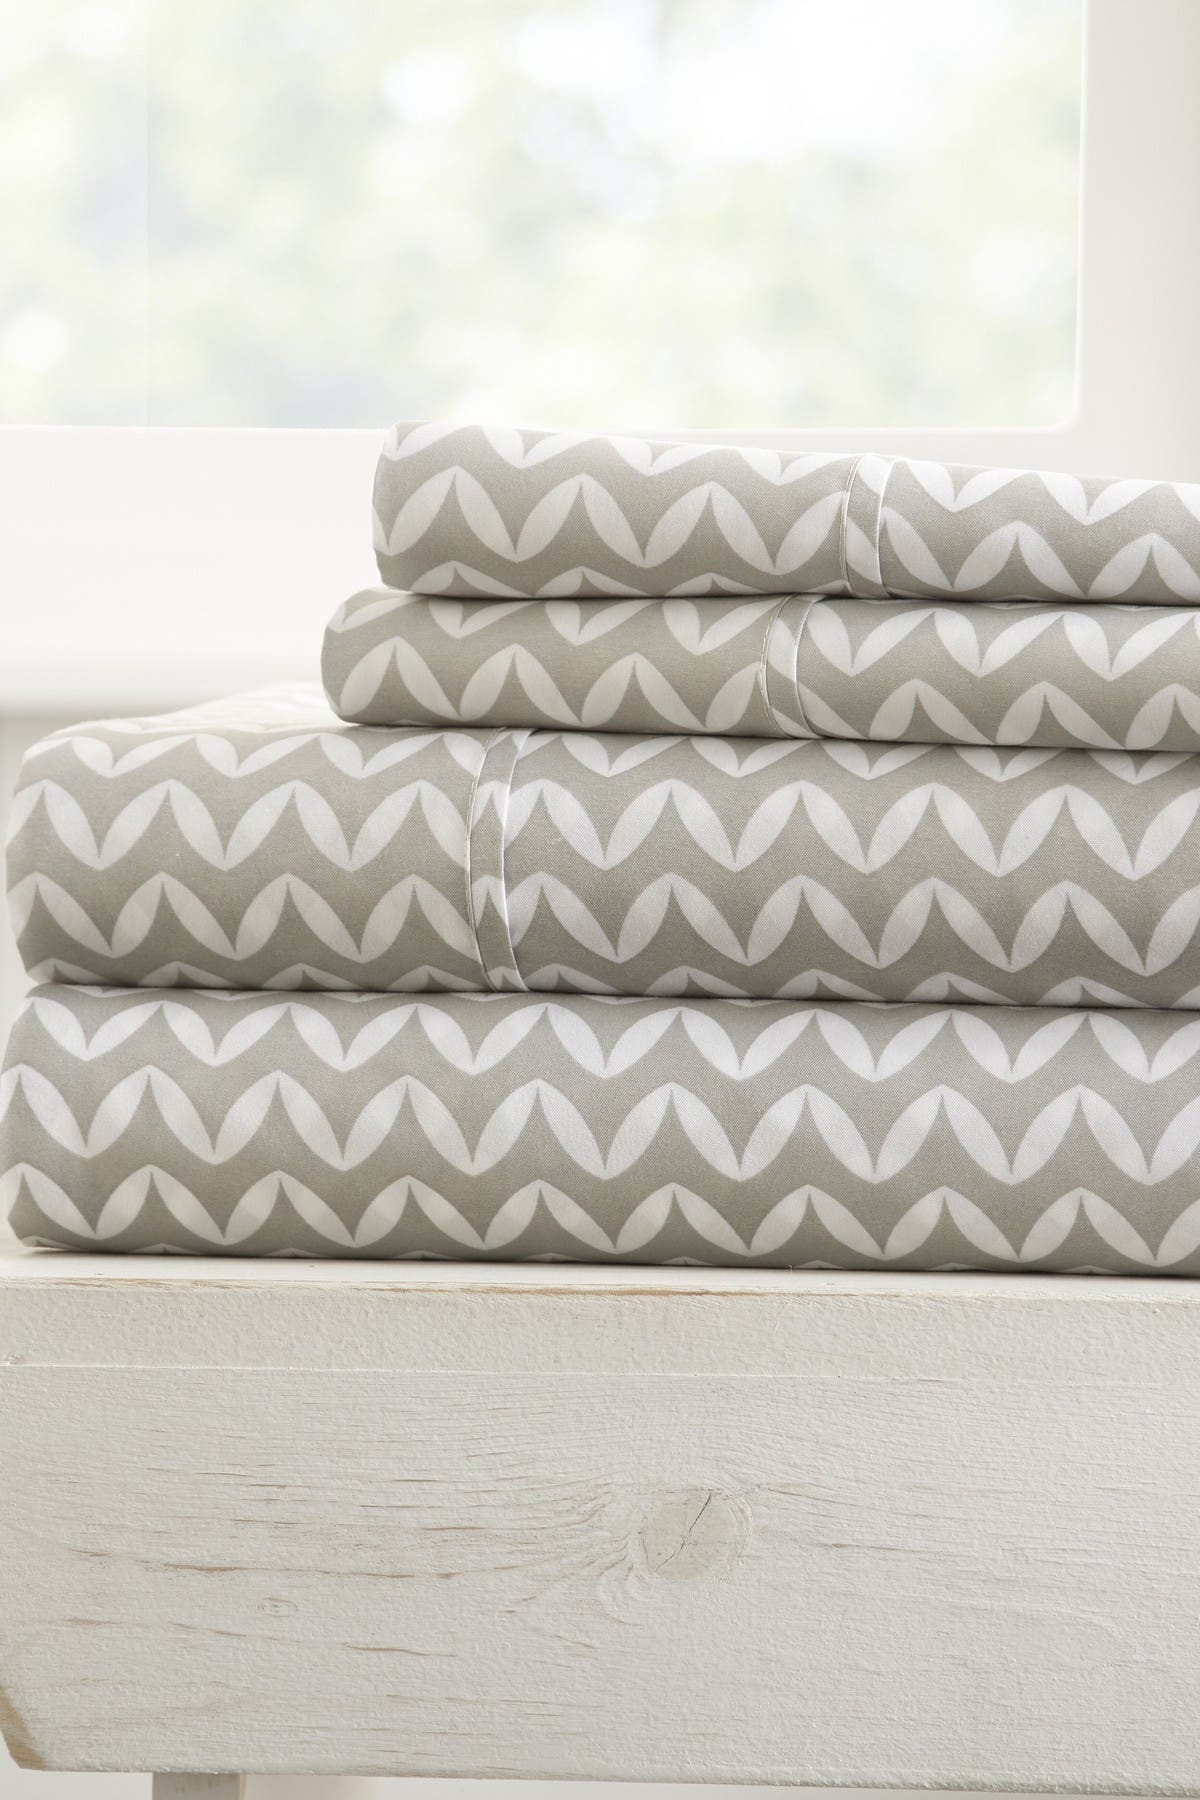 Image of IENJOY HOME The Home Spun Premium Ultra Soft Puffed Chevron Pattern 4-Piece King Bed Sheet Set - Gray